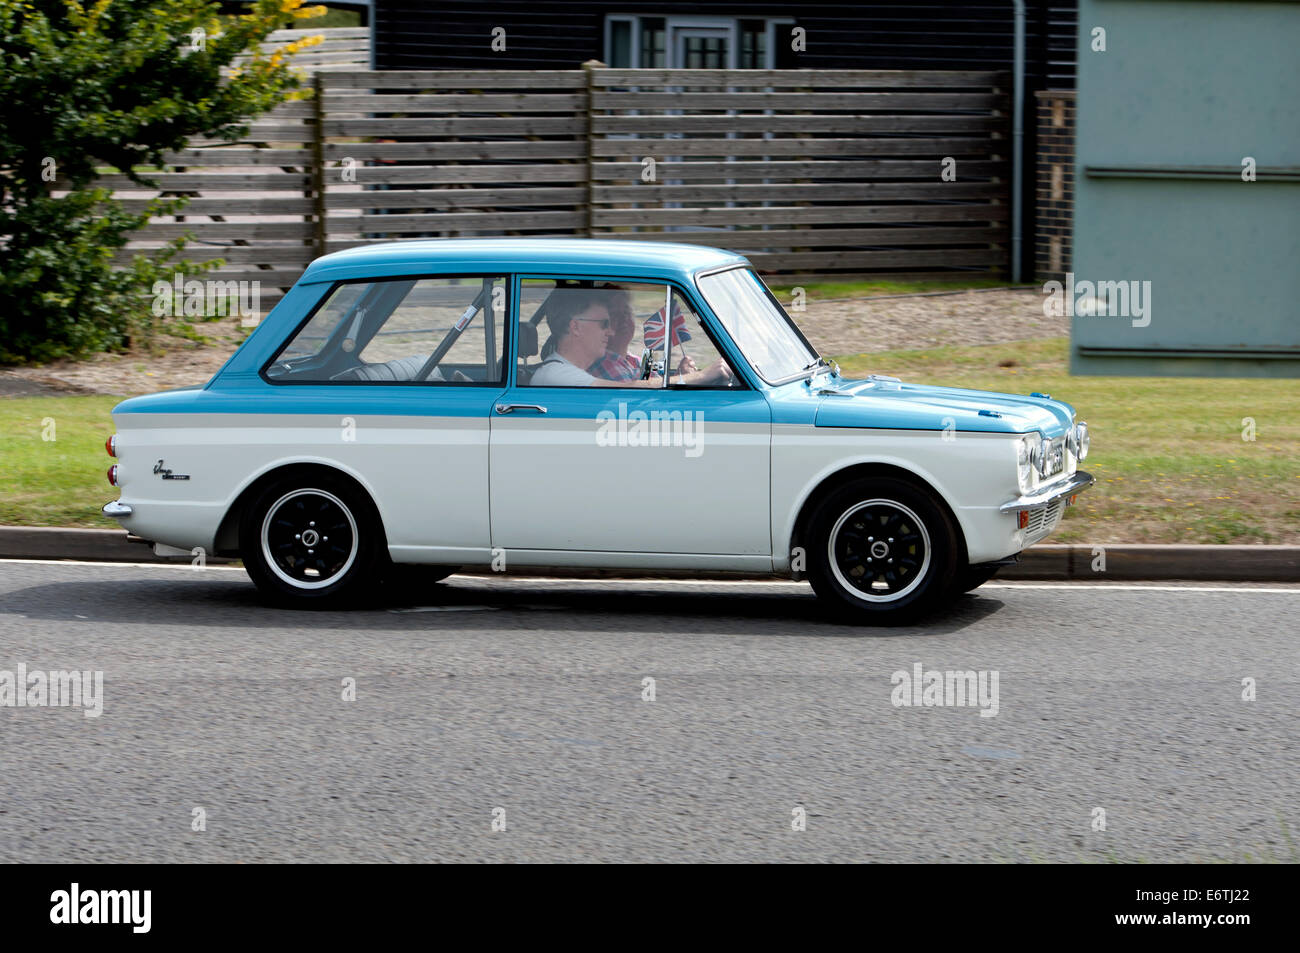 Hillman Imp Super car on the Fosse Way road, Warwickshire, UK - Stock Image